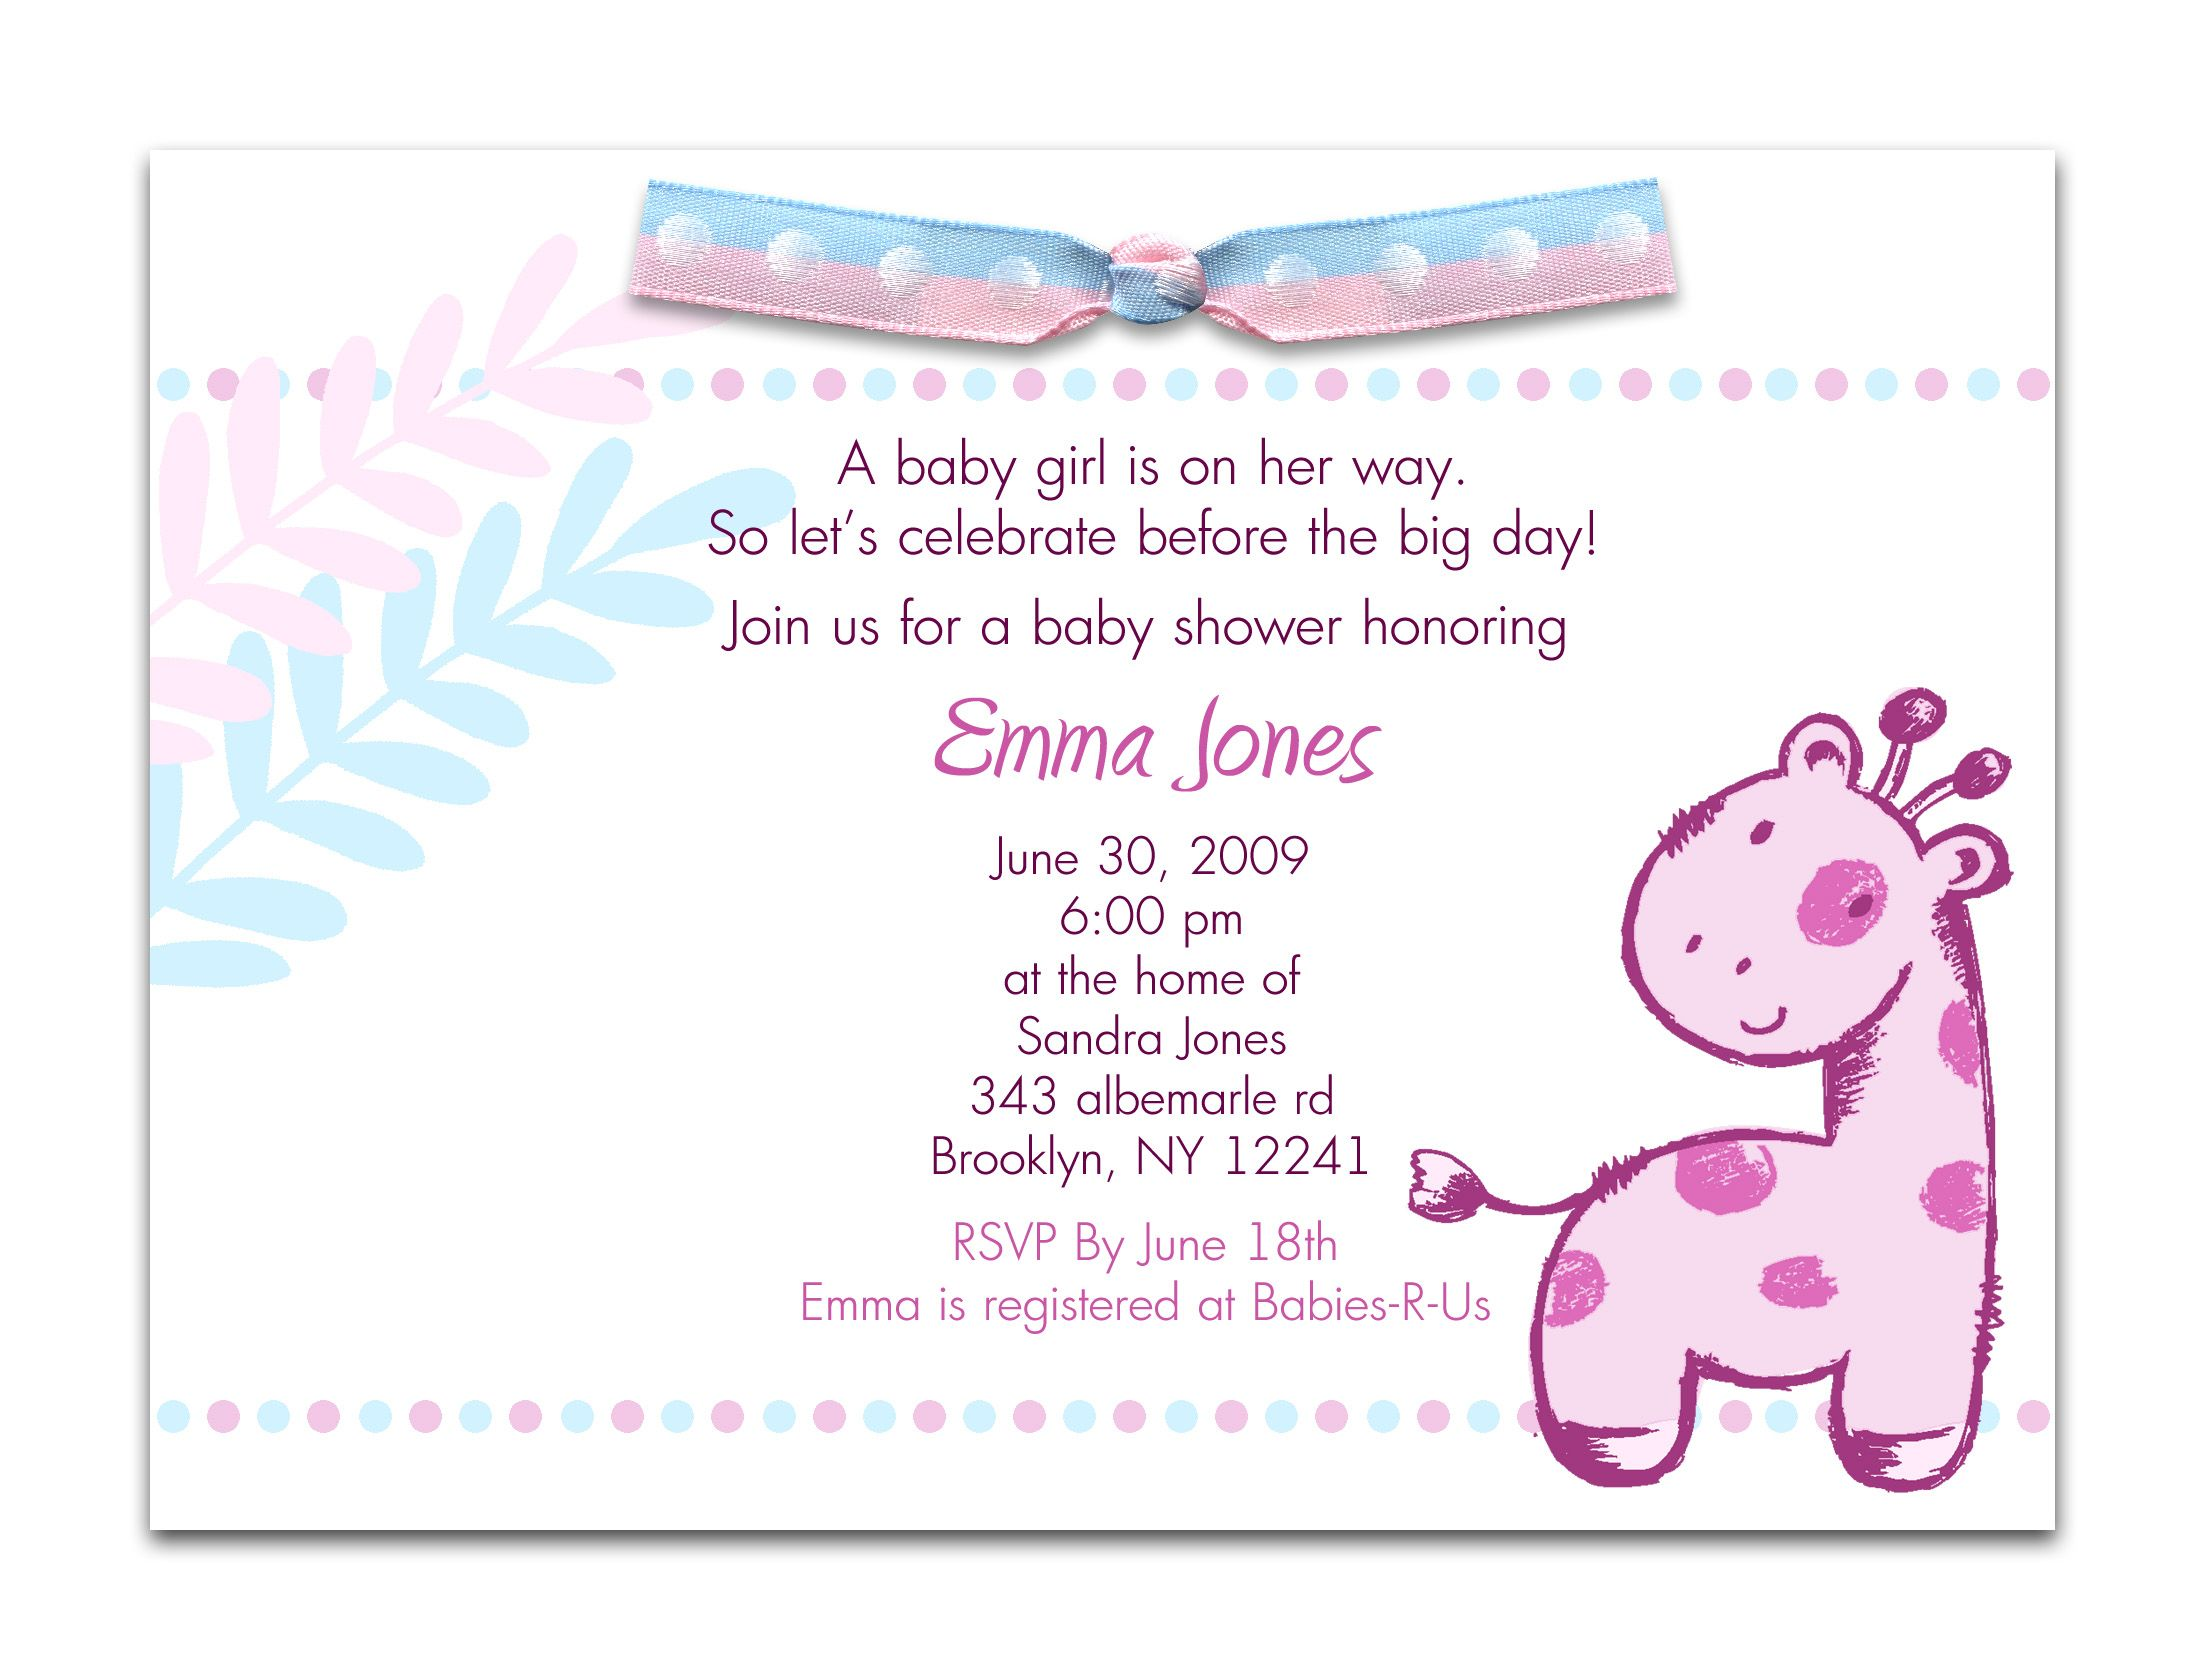 baby shower invitations, card  simple design baby shower, Baby shower invitation